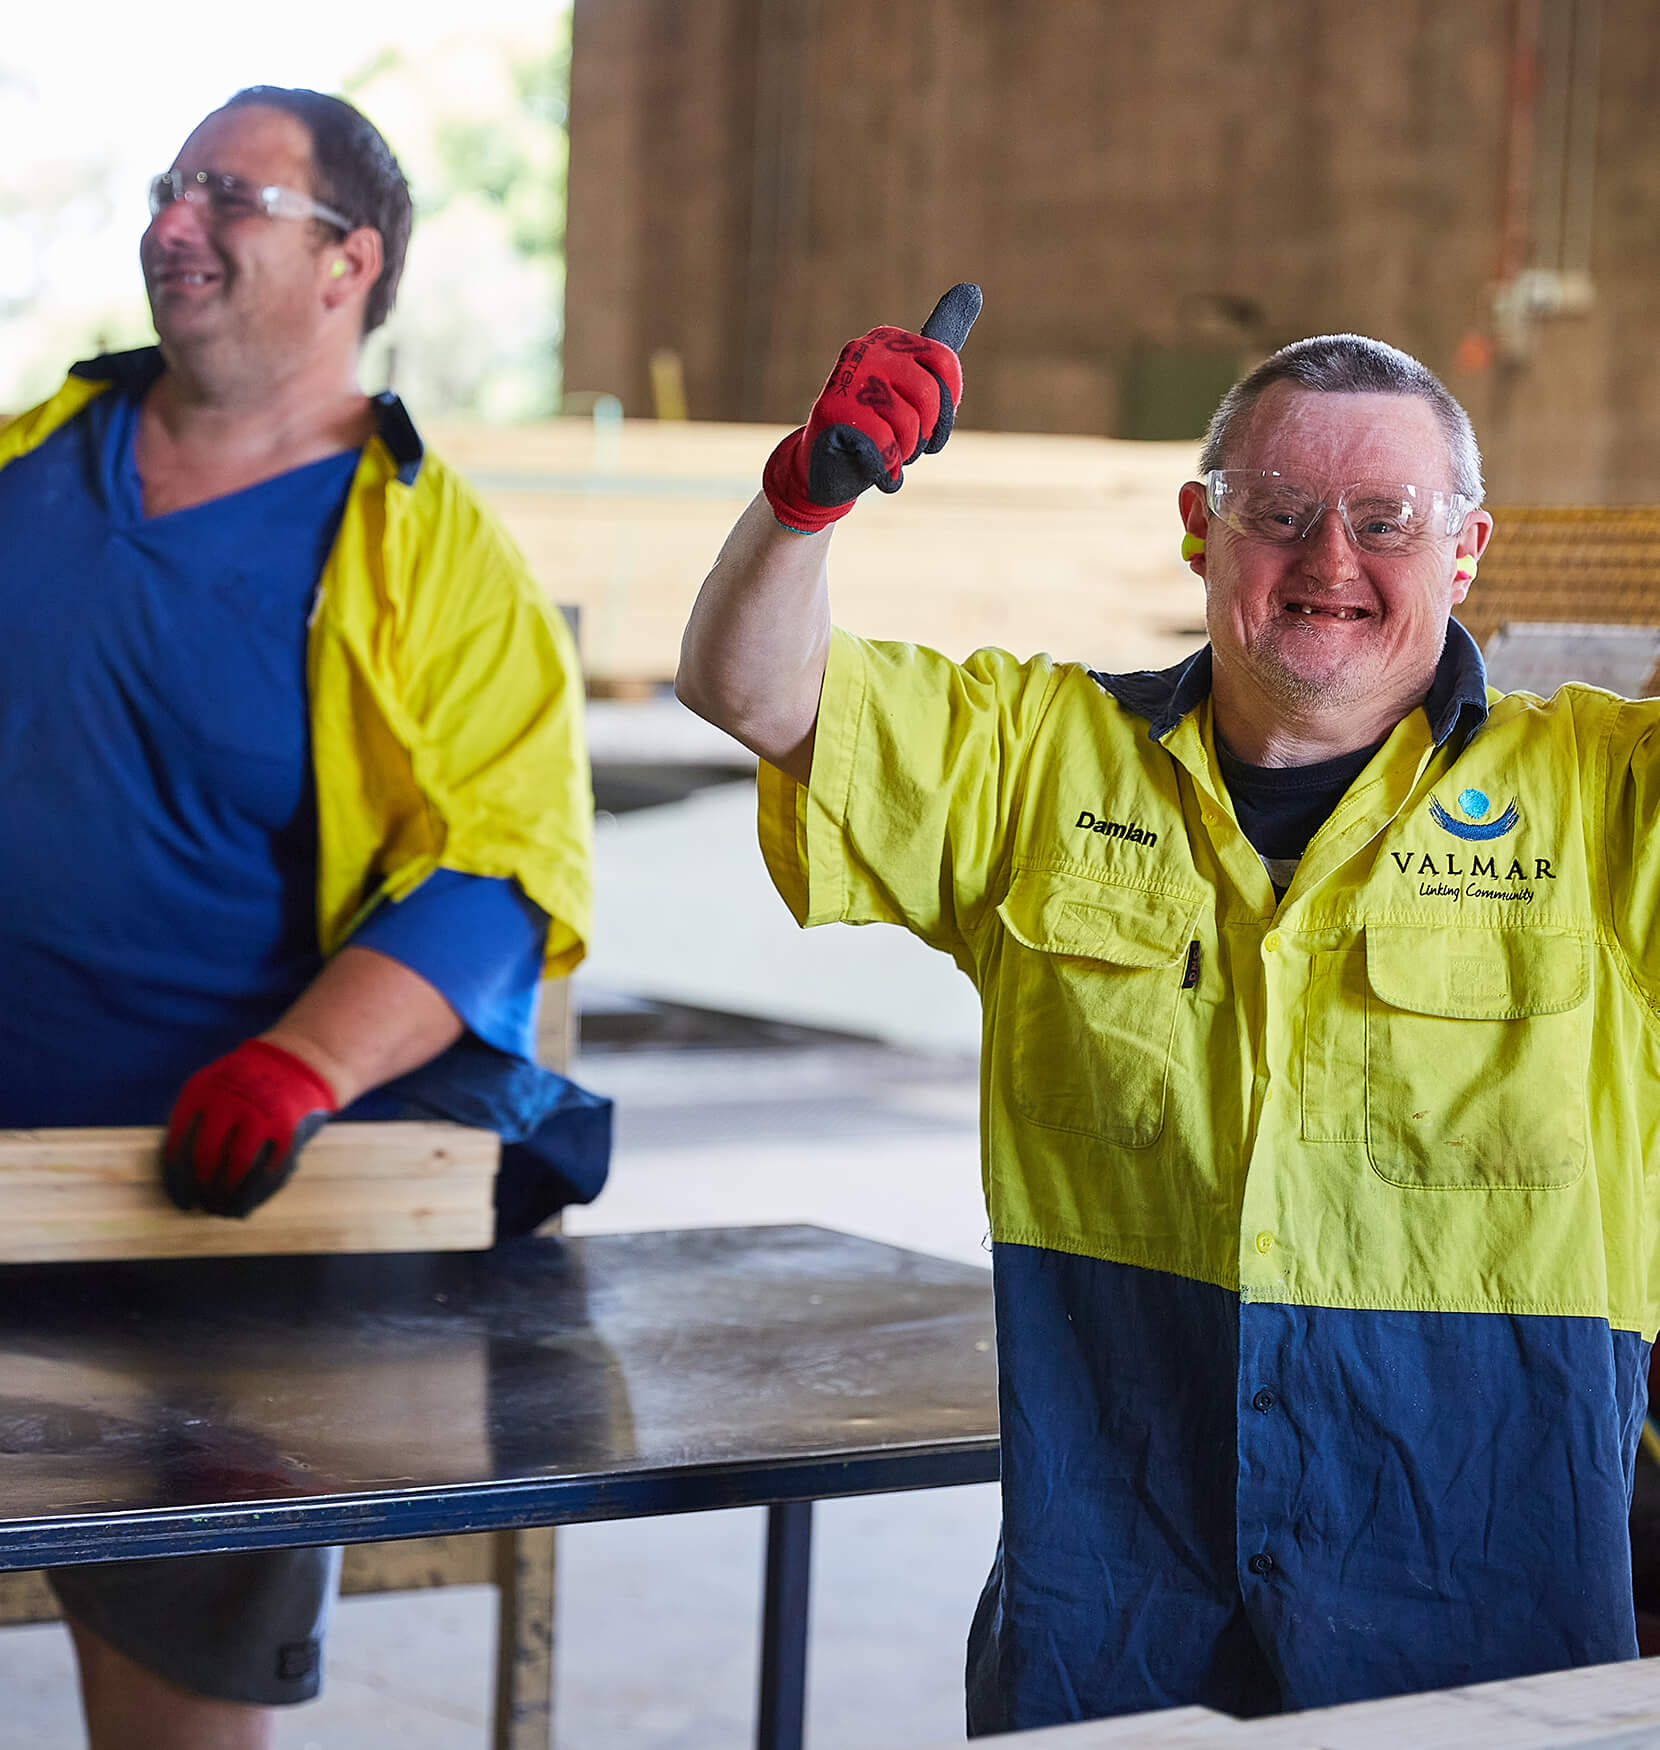 A smiling man in hi-vis work gear in a workshop holding his hands up in a cheering pose